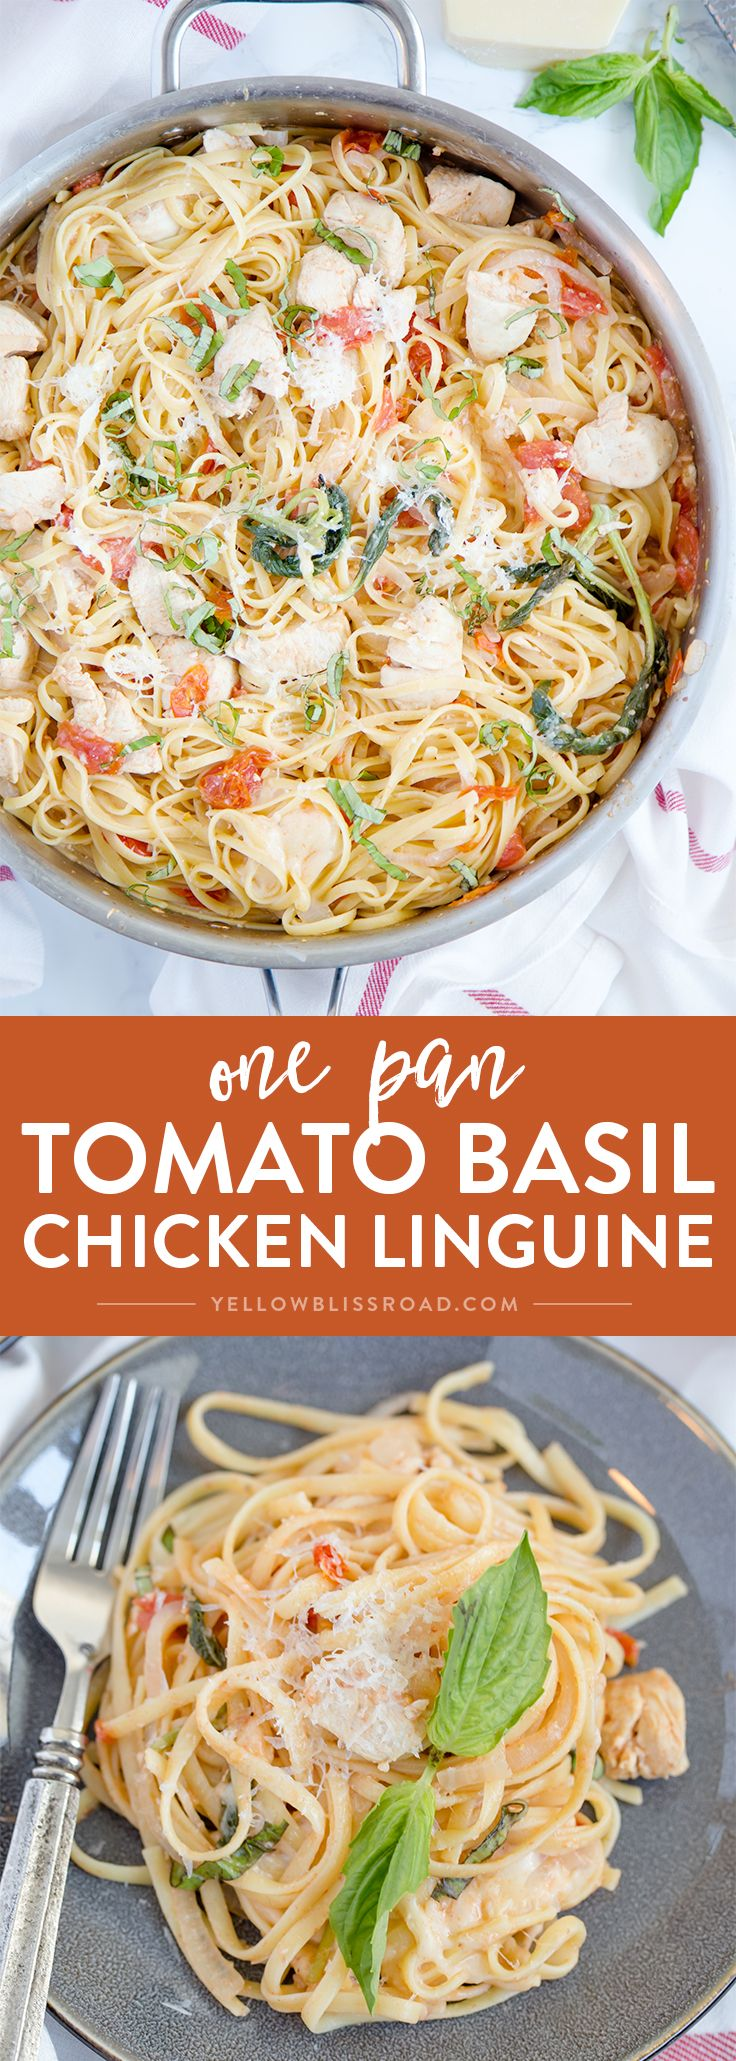 One Pan Tomato Basil Chicken Linguine - A quick and easy pasta dish that's ready in 20 minutes.; a delicious weeknight meal.